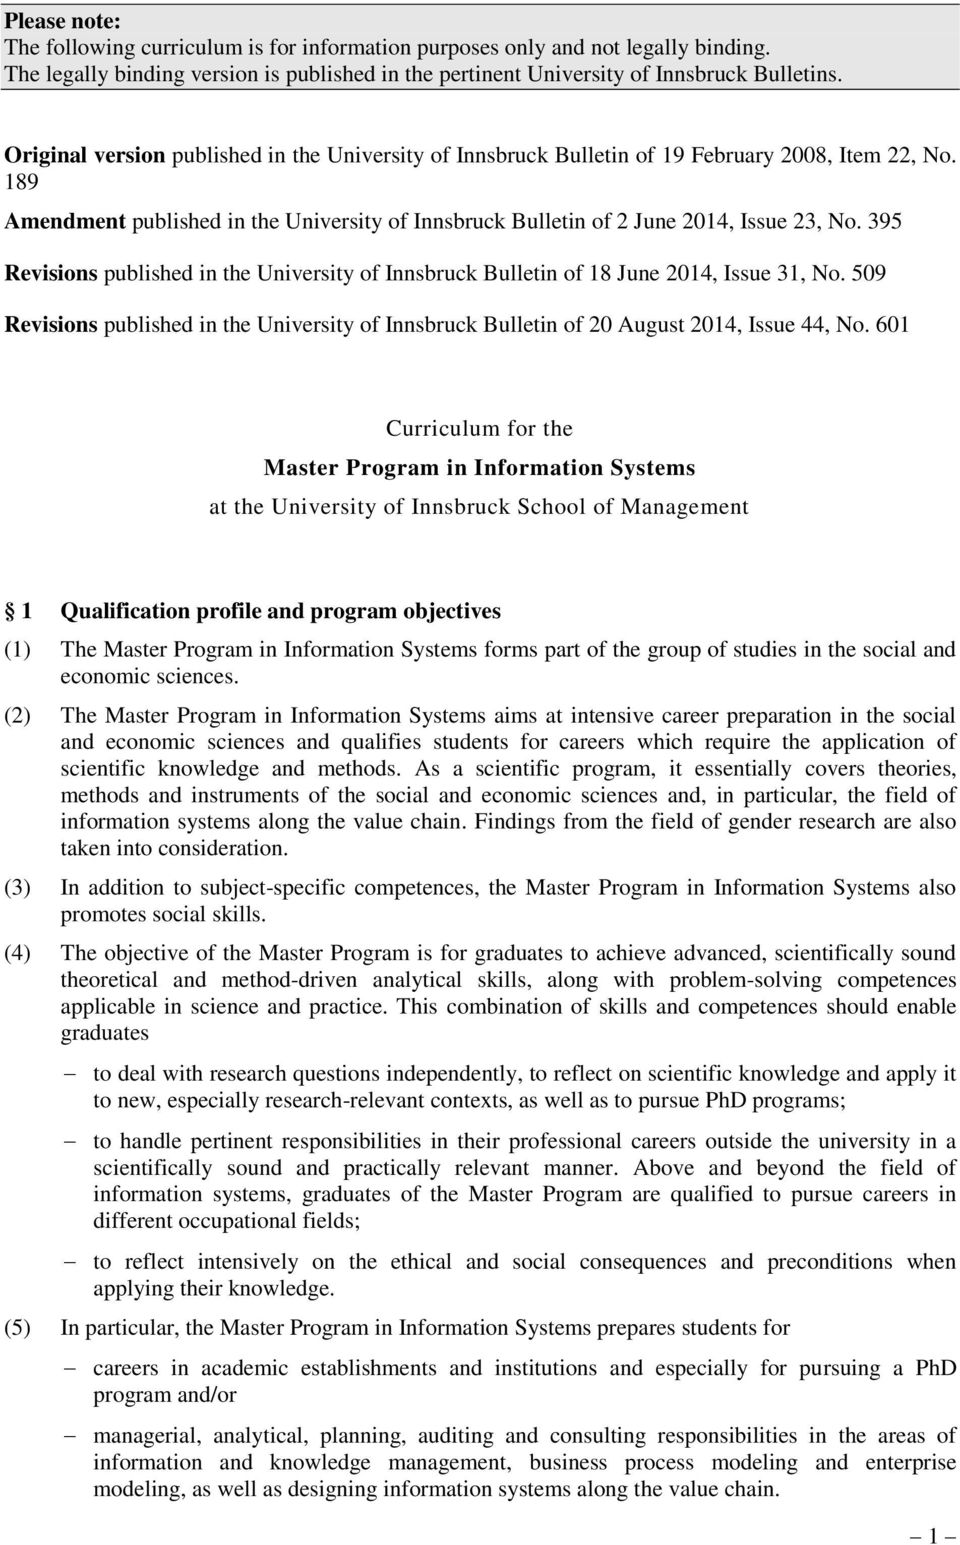 395 Revisions pulished in the University of Innsruck Bulletin of 18 June 2014, Issue 31, No. 509 Revisions pulished in the University of Innsruck Bulletin of 20 August 2014, Issue 44, No.